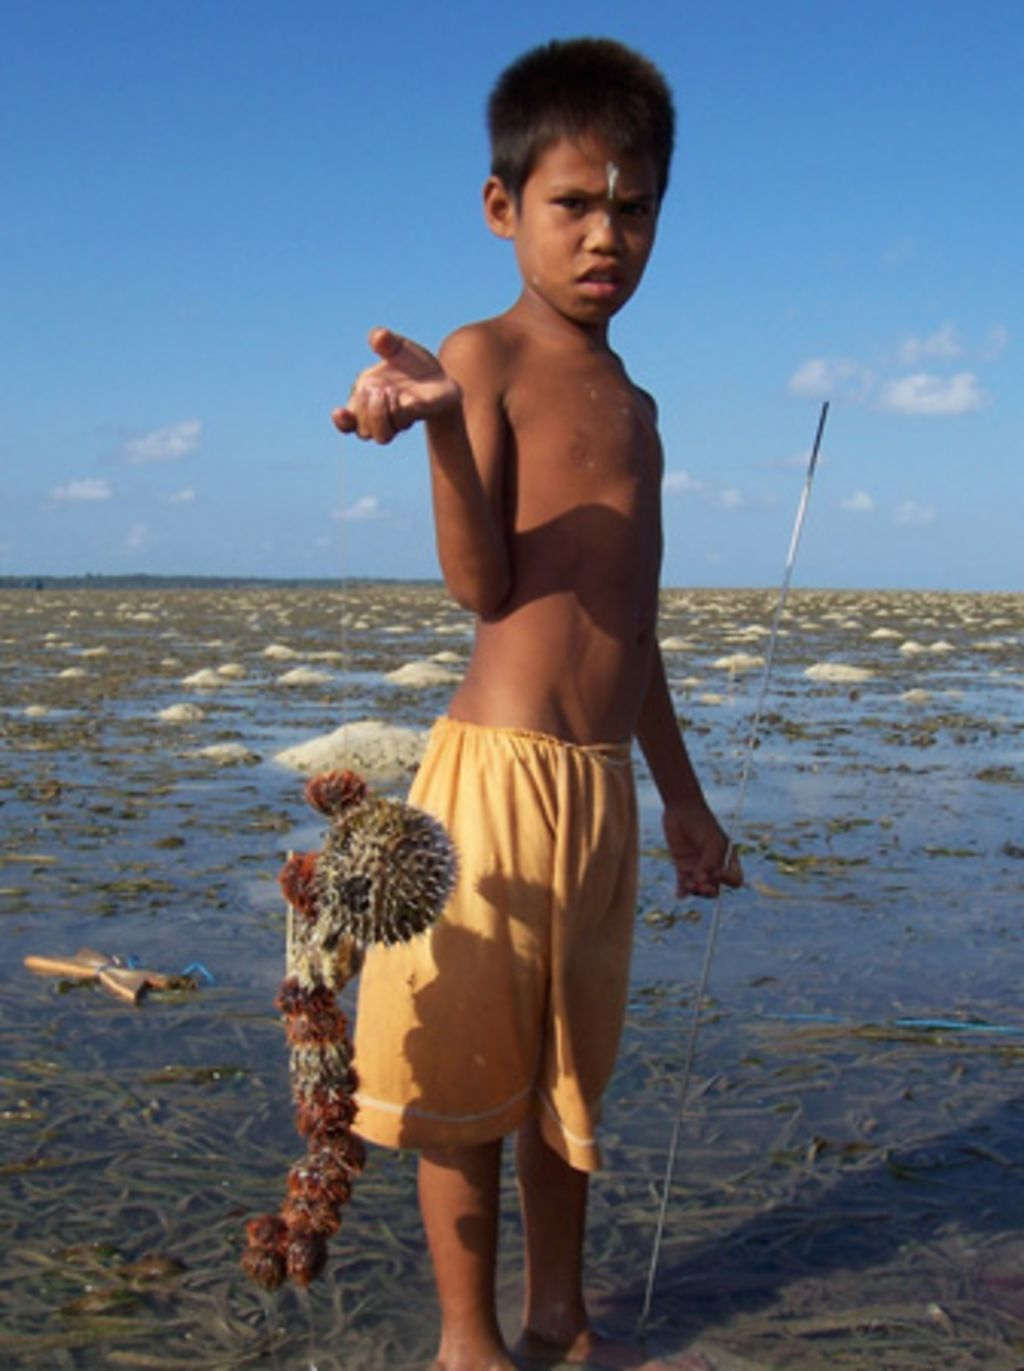 Fishing is 'best argument for seagrass'